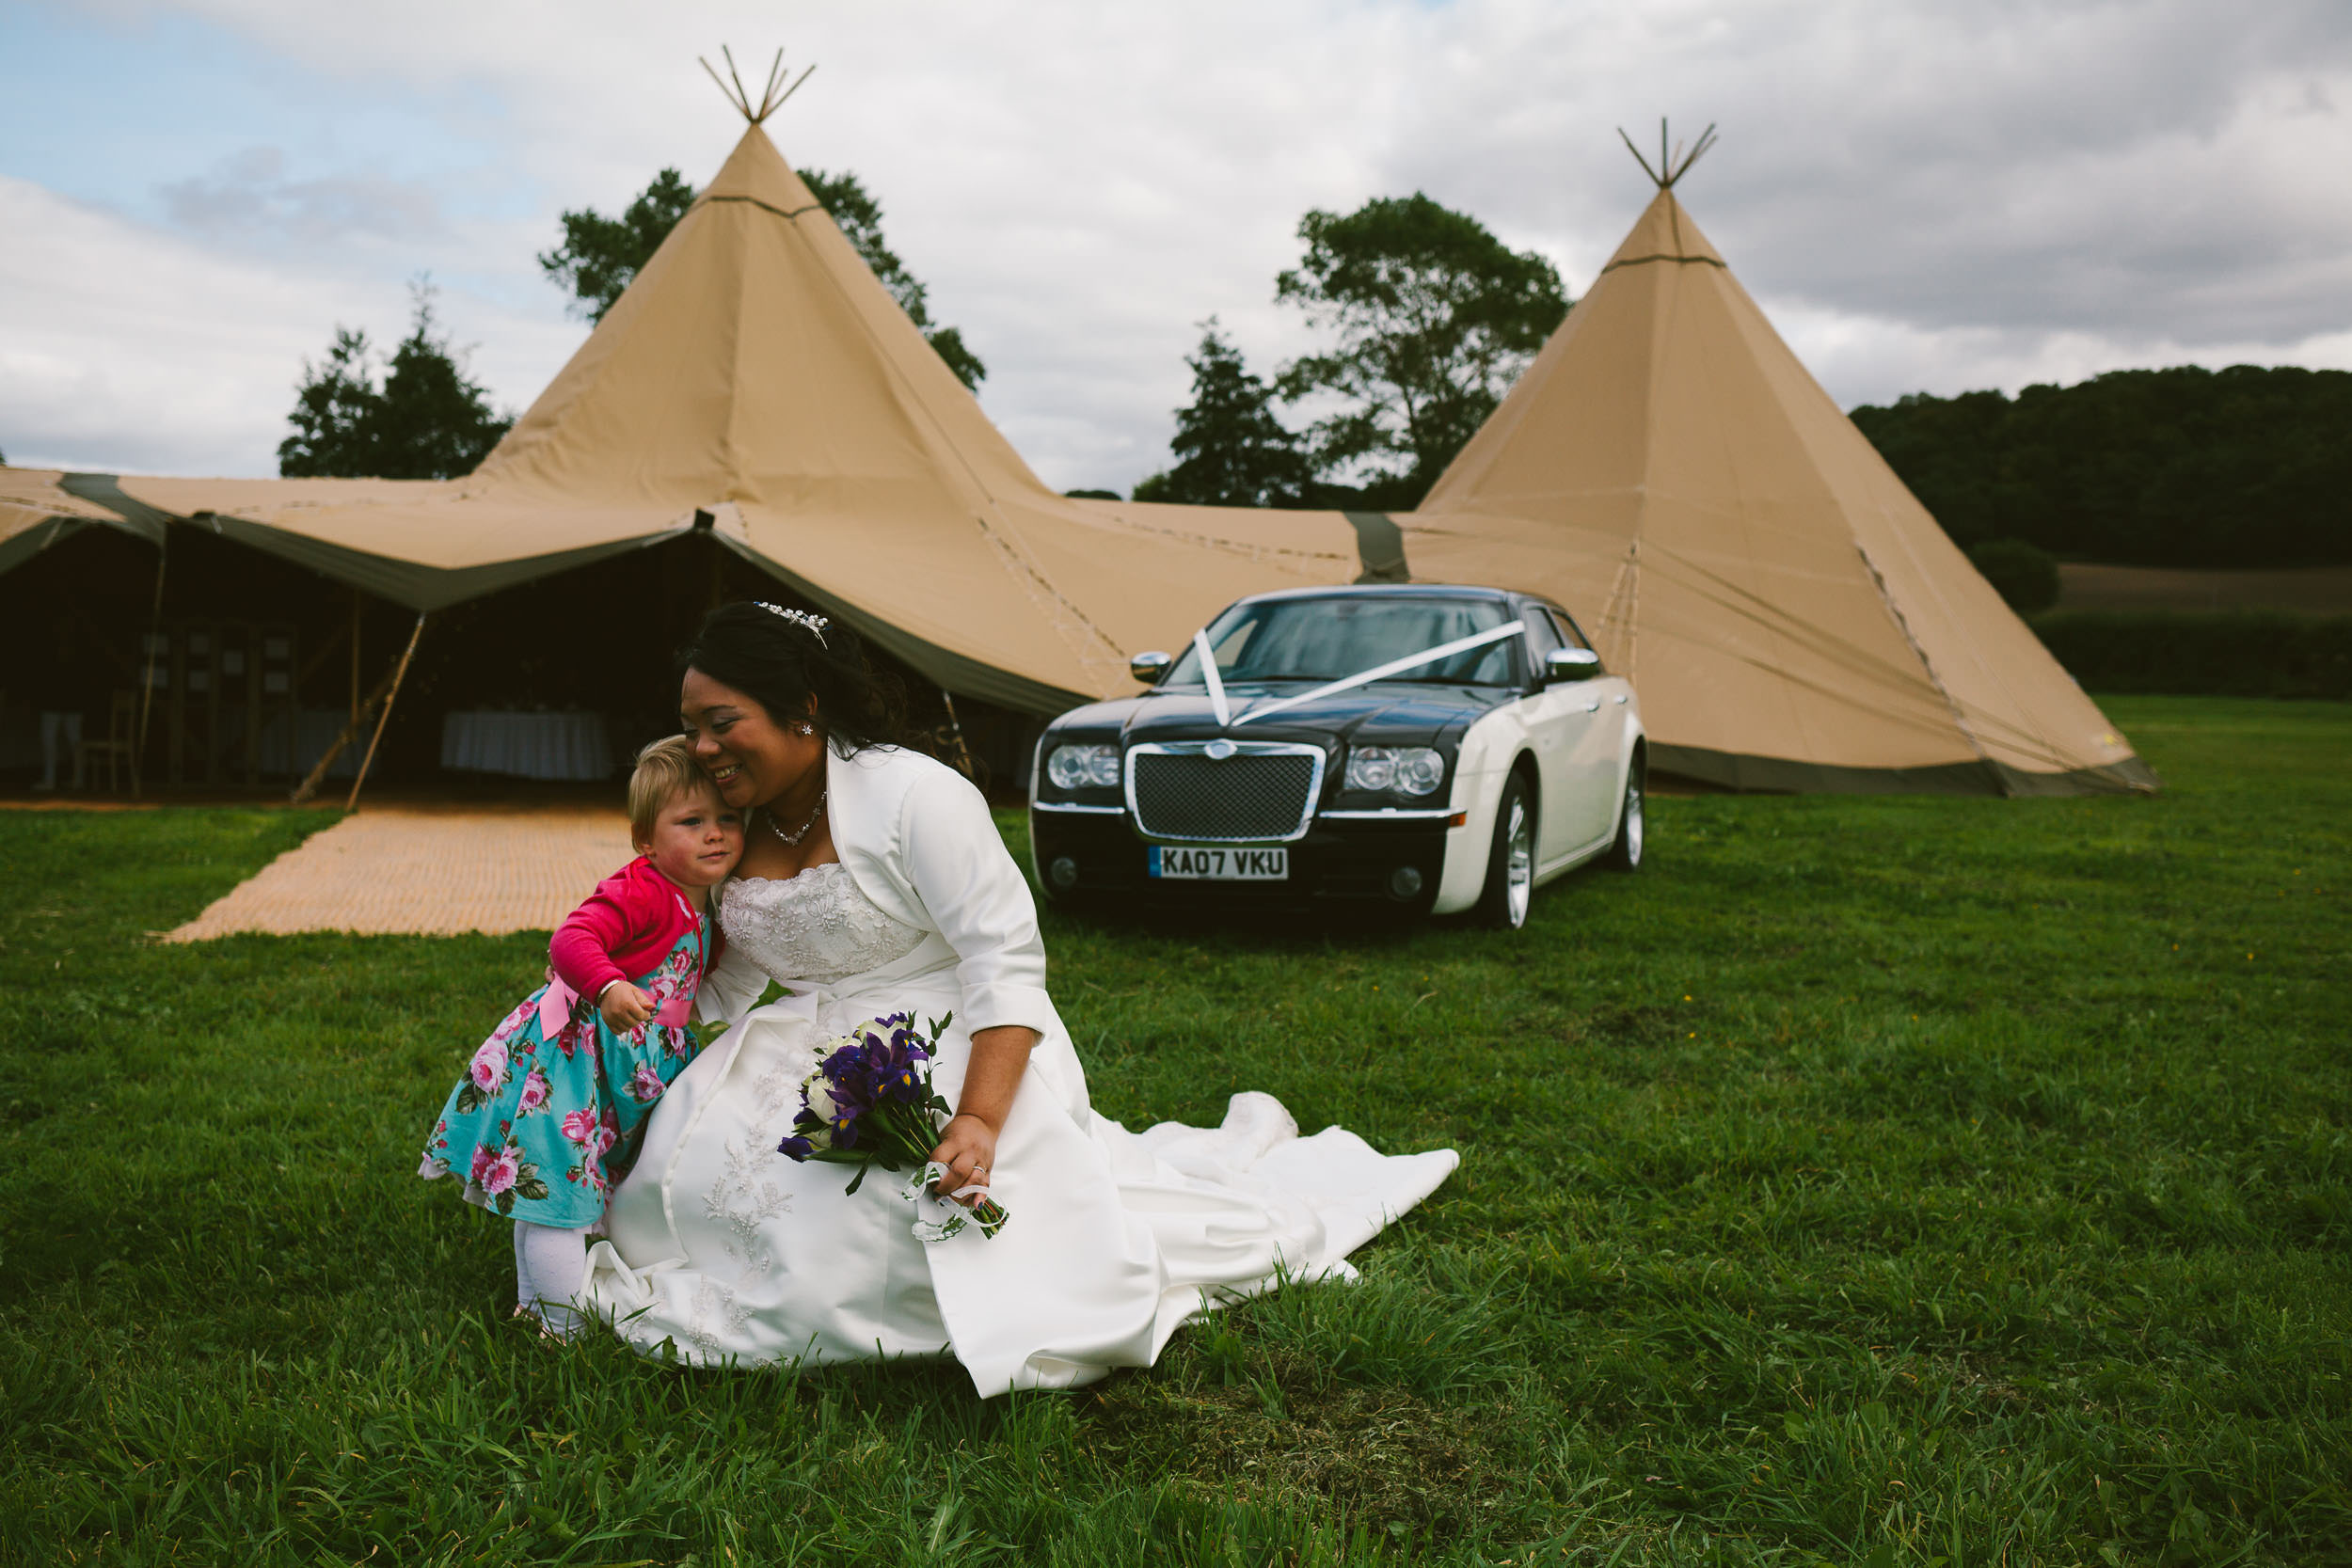 Bride cuddles daughter with tipi and wedding car in background